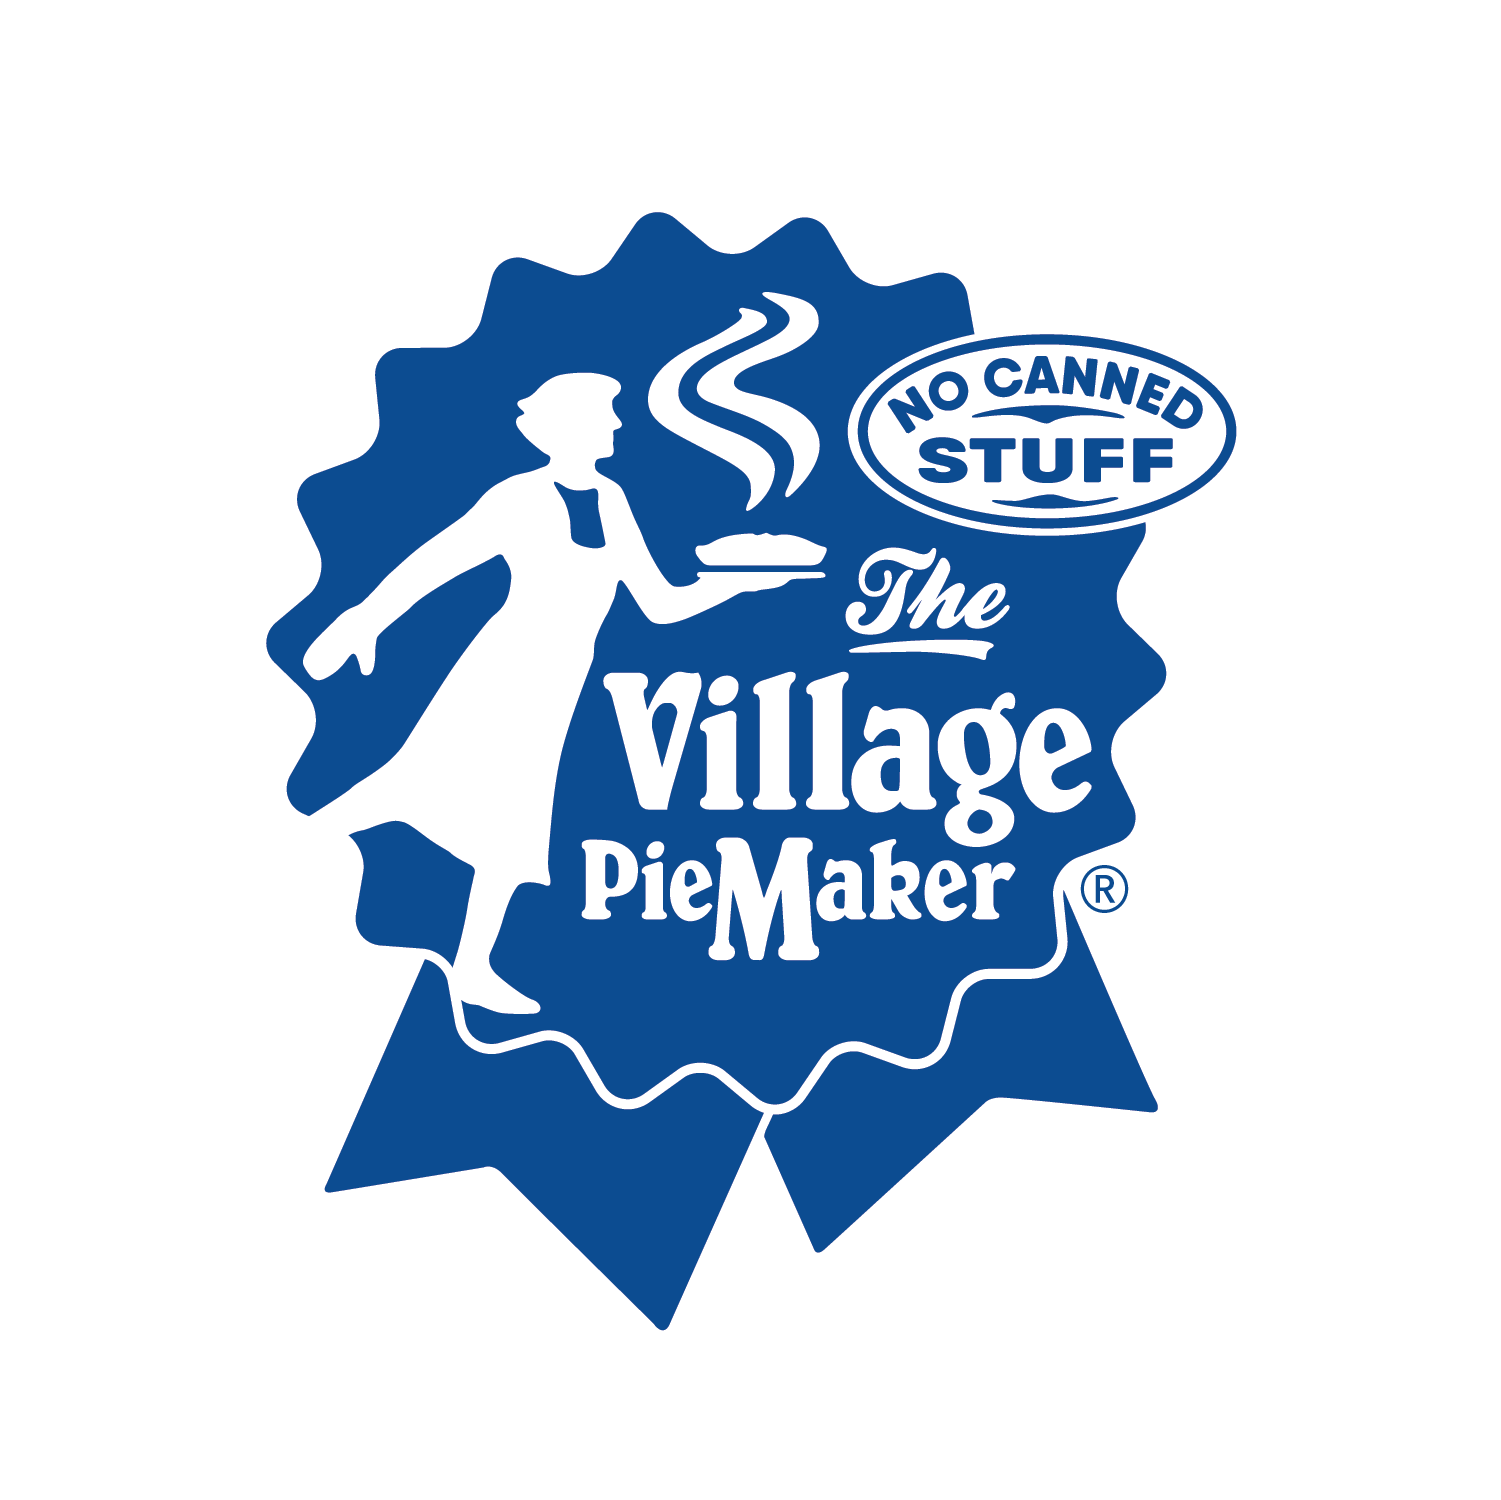 The Village PieMaker - The Village PieMaker does more than just make the best frozen fruit pies in the world. We believe that pie brings happiness, and we're proud to share slices of happiness with our customers.